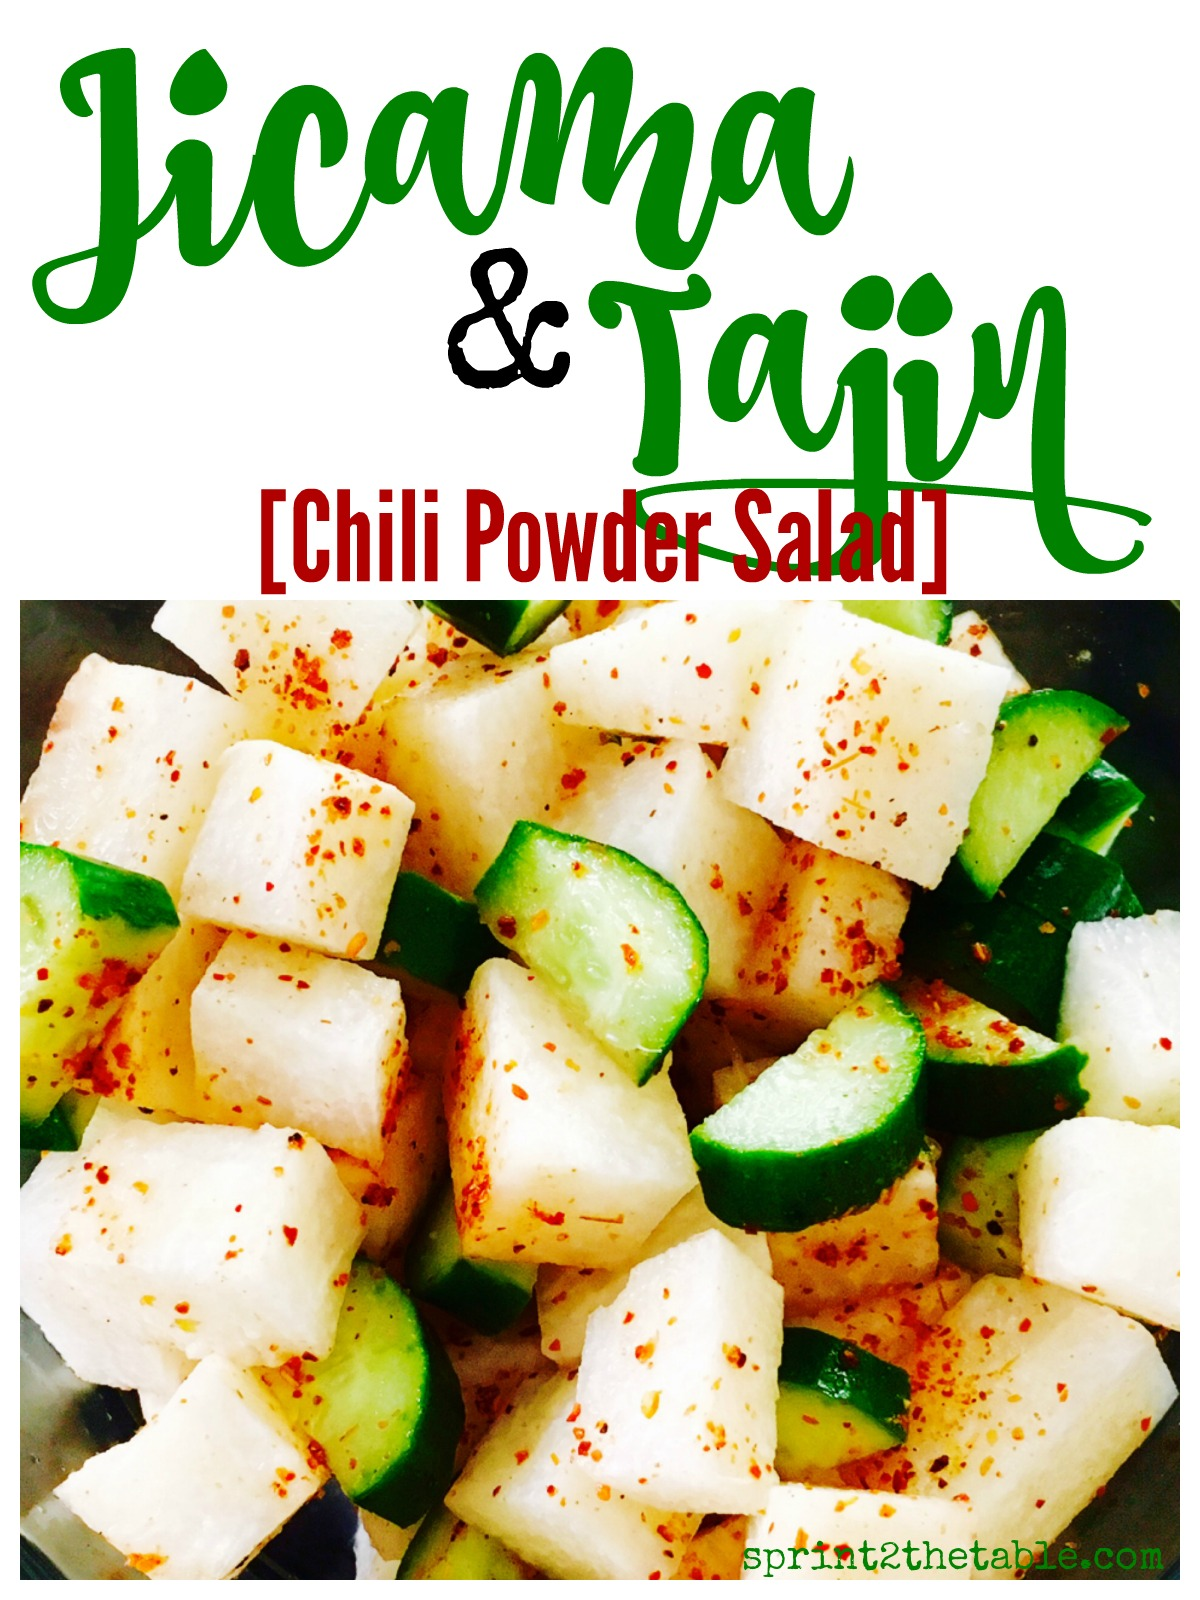 jicama-tajin-chili-powder-salad-flavorful-side-or-snack-in-5-minutes